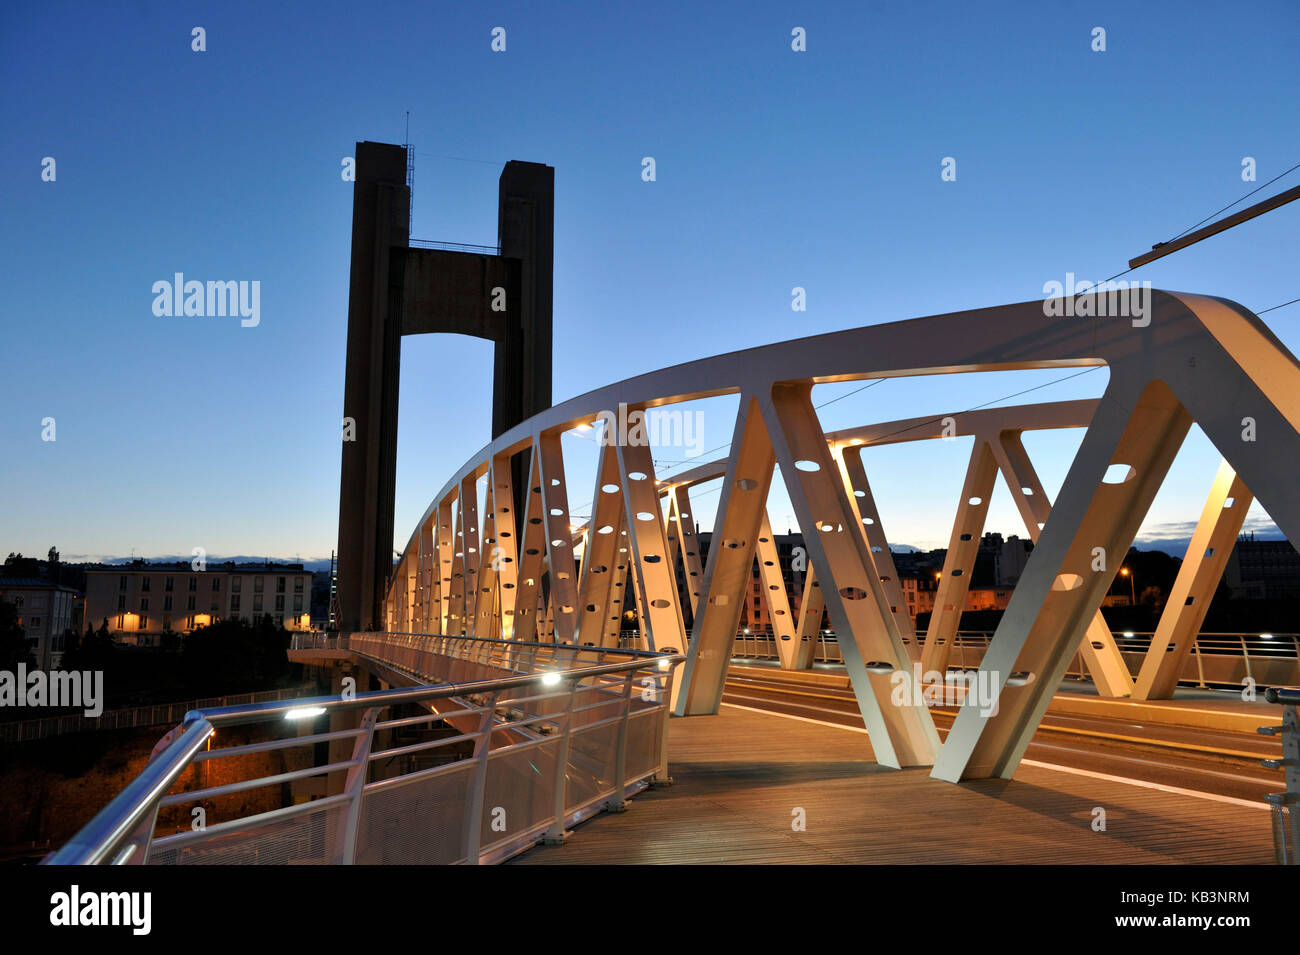 France, Finistere, Brest, Recouvrance Bridge is a raising bridge which crosses Penfeld - Stock Image